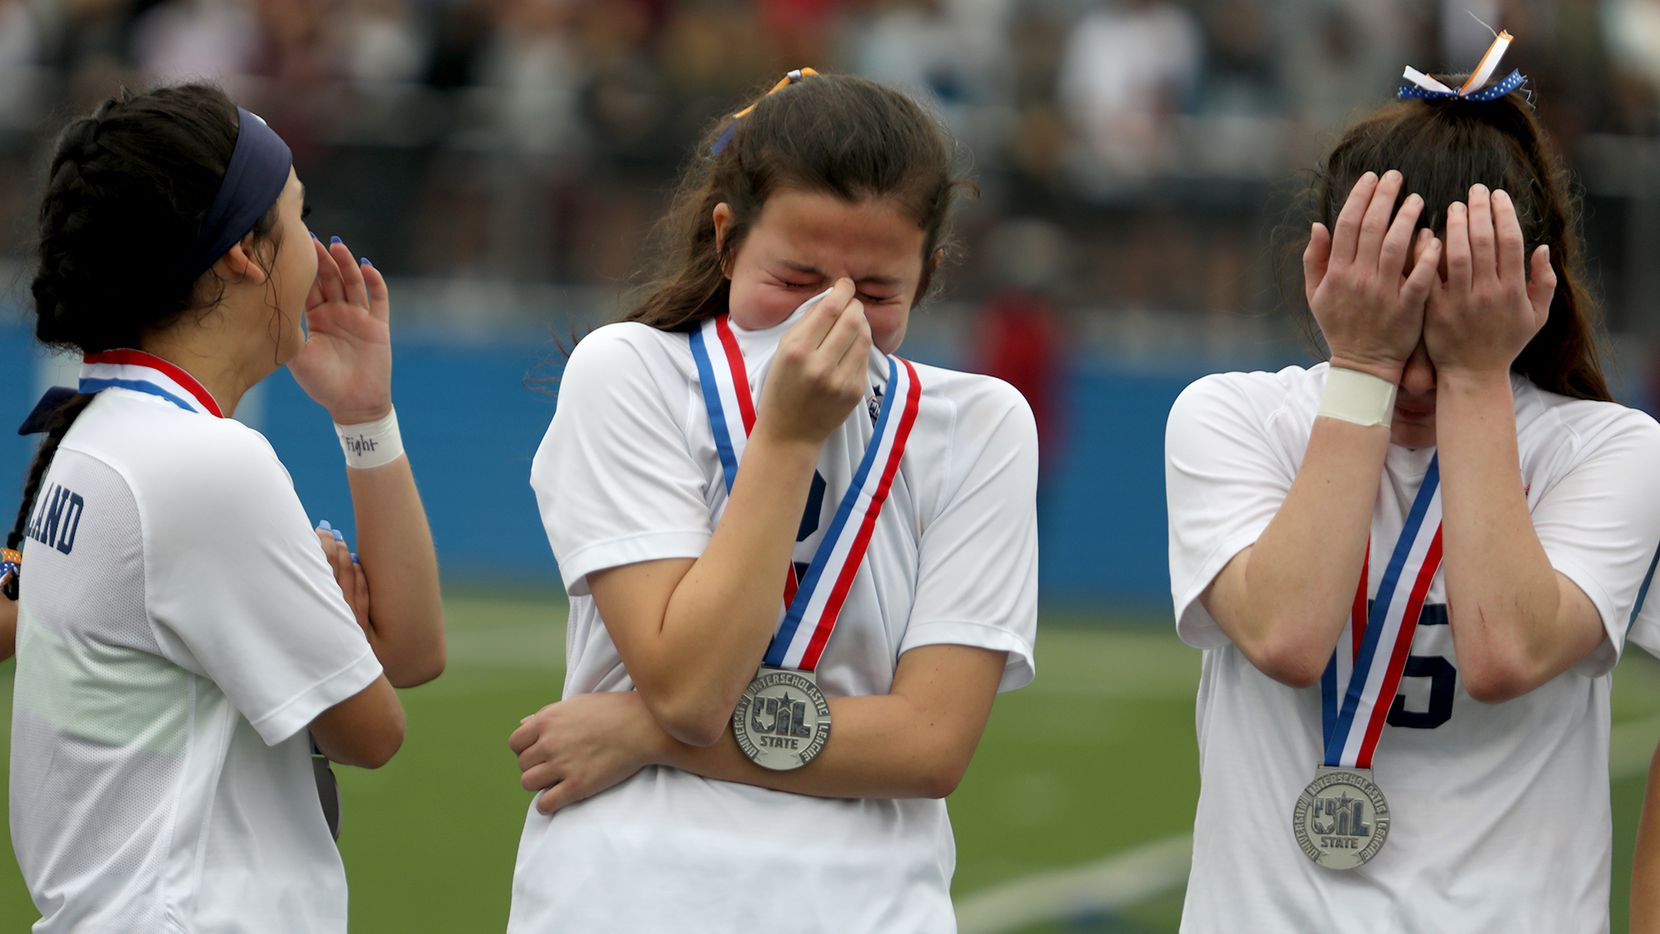 Wakeland's Natalie Cox (from left), Rachel Perry, and Ally Perry react after their UIL 5A girls State championship soccer game against Dripping Springs at Birkelbach Field on April 16, 2021 in Georgetown, Texas. Dripping Springs won 2-1.